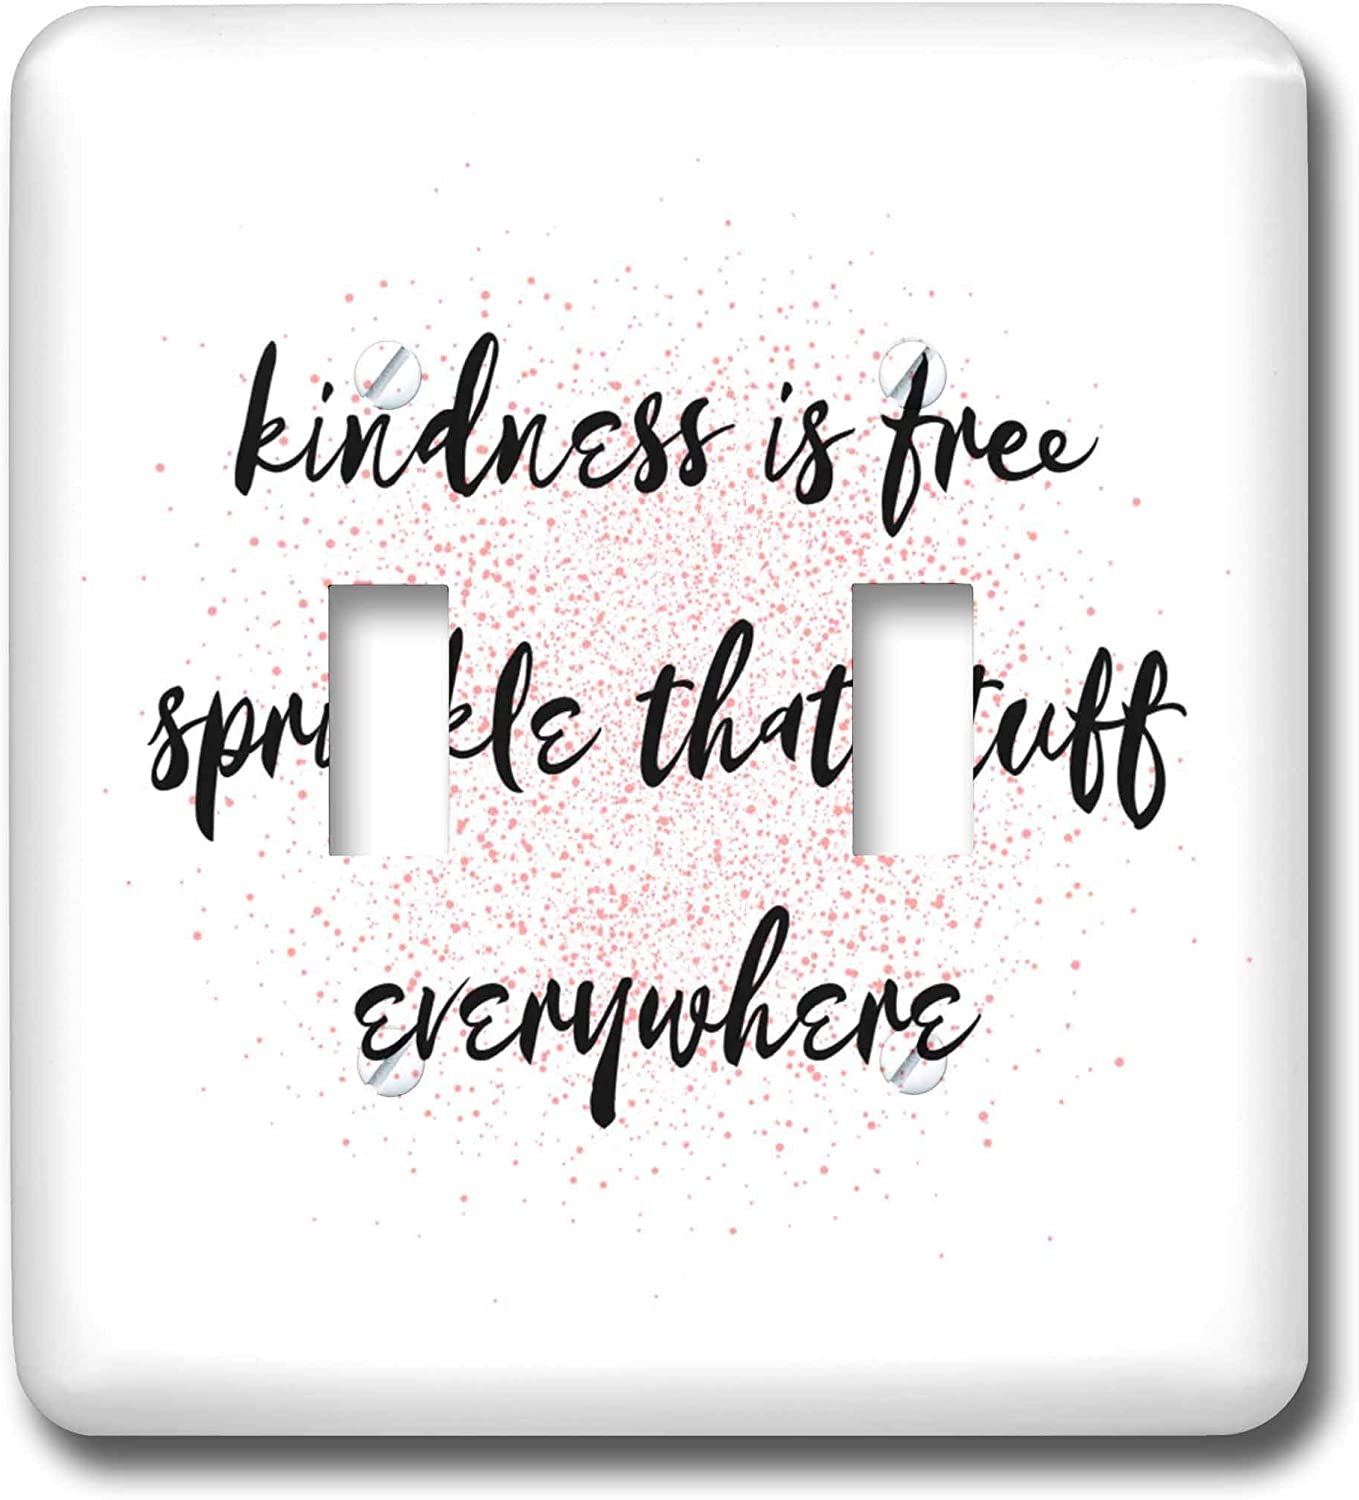 3drose Nicole R Quote Image Of Kindness Is Free Sprinkle That Stuff Everywhere Double Toggle Switch Lsp 309532 2 Amazon Com